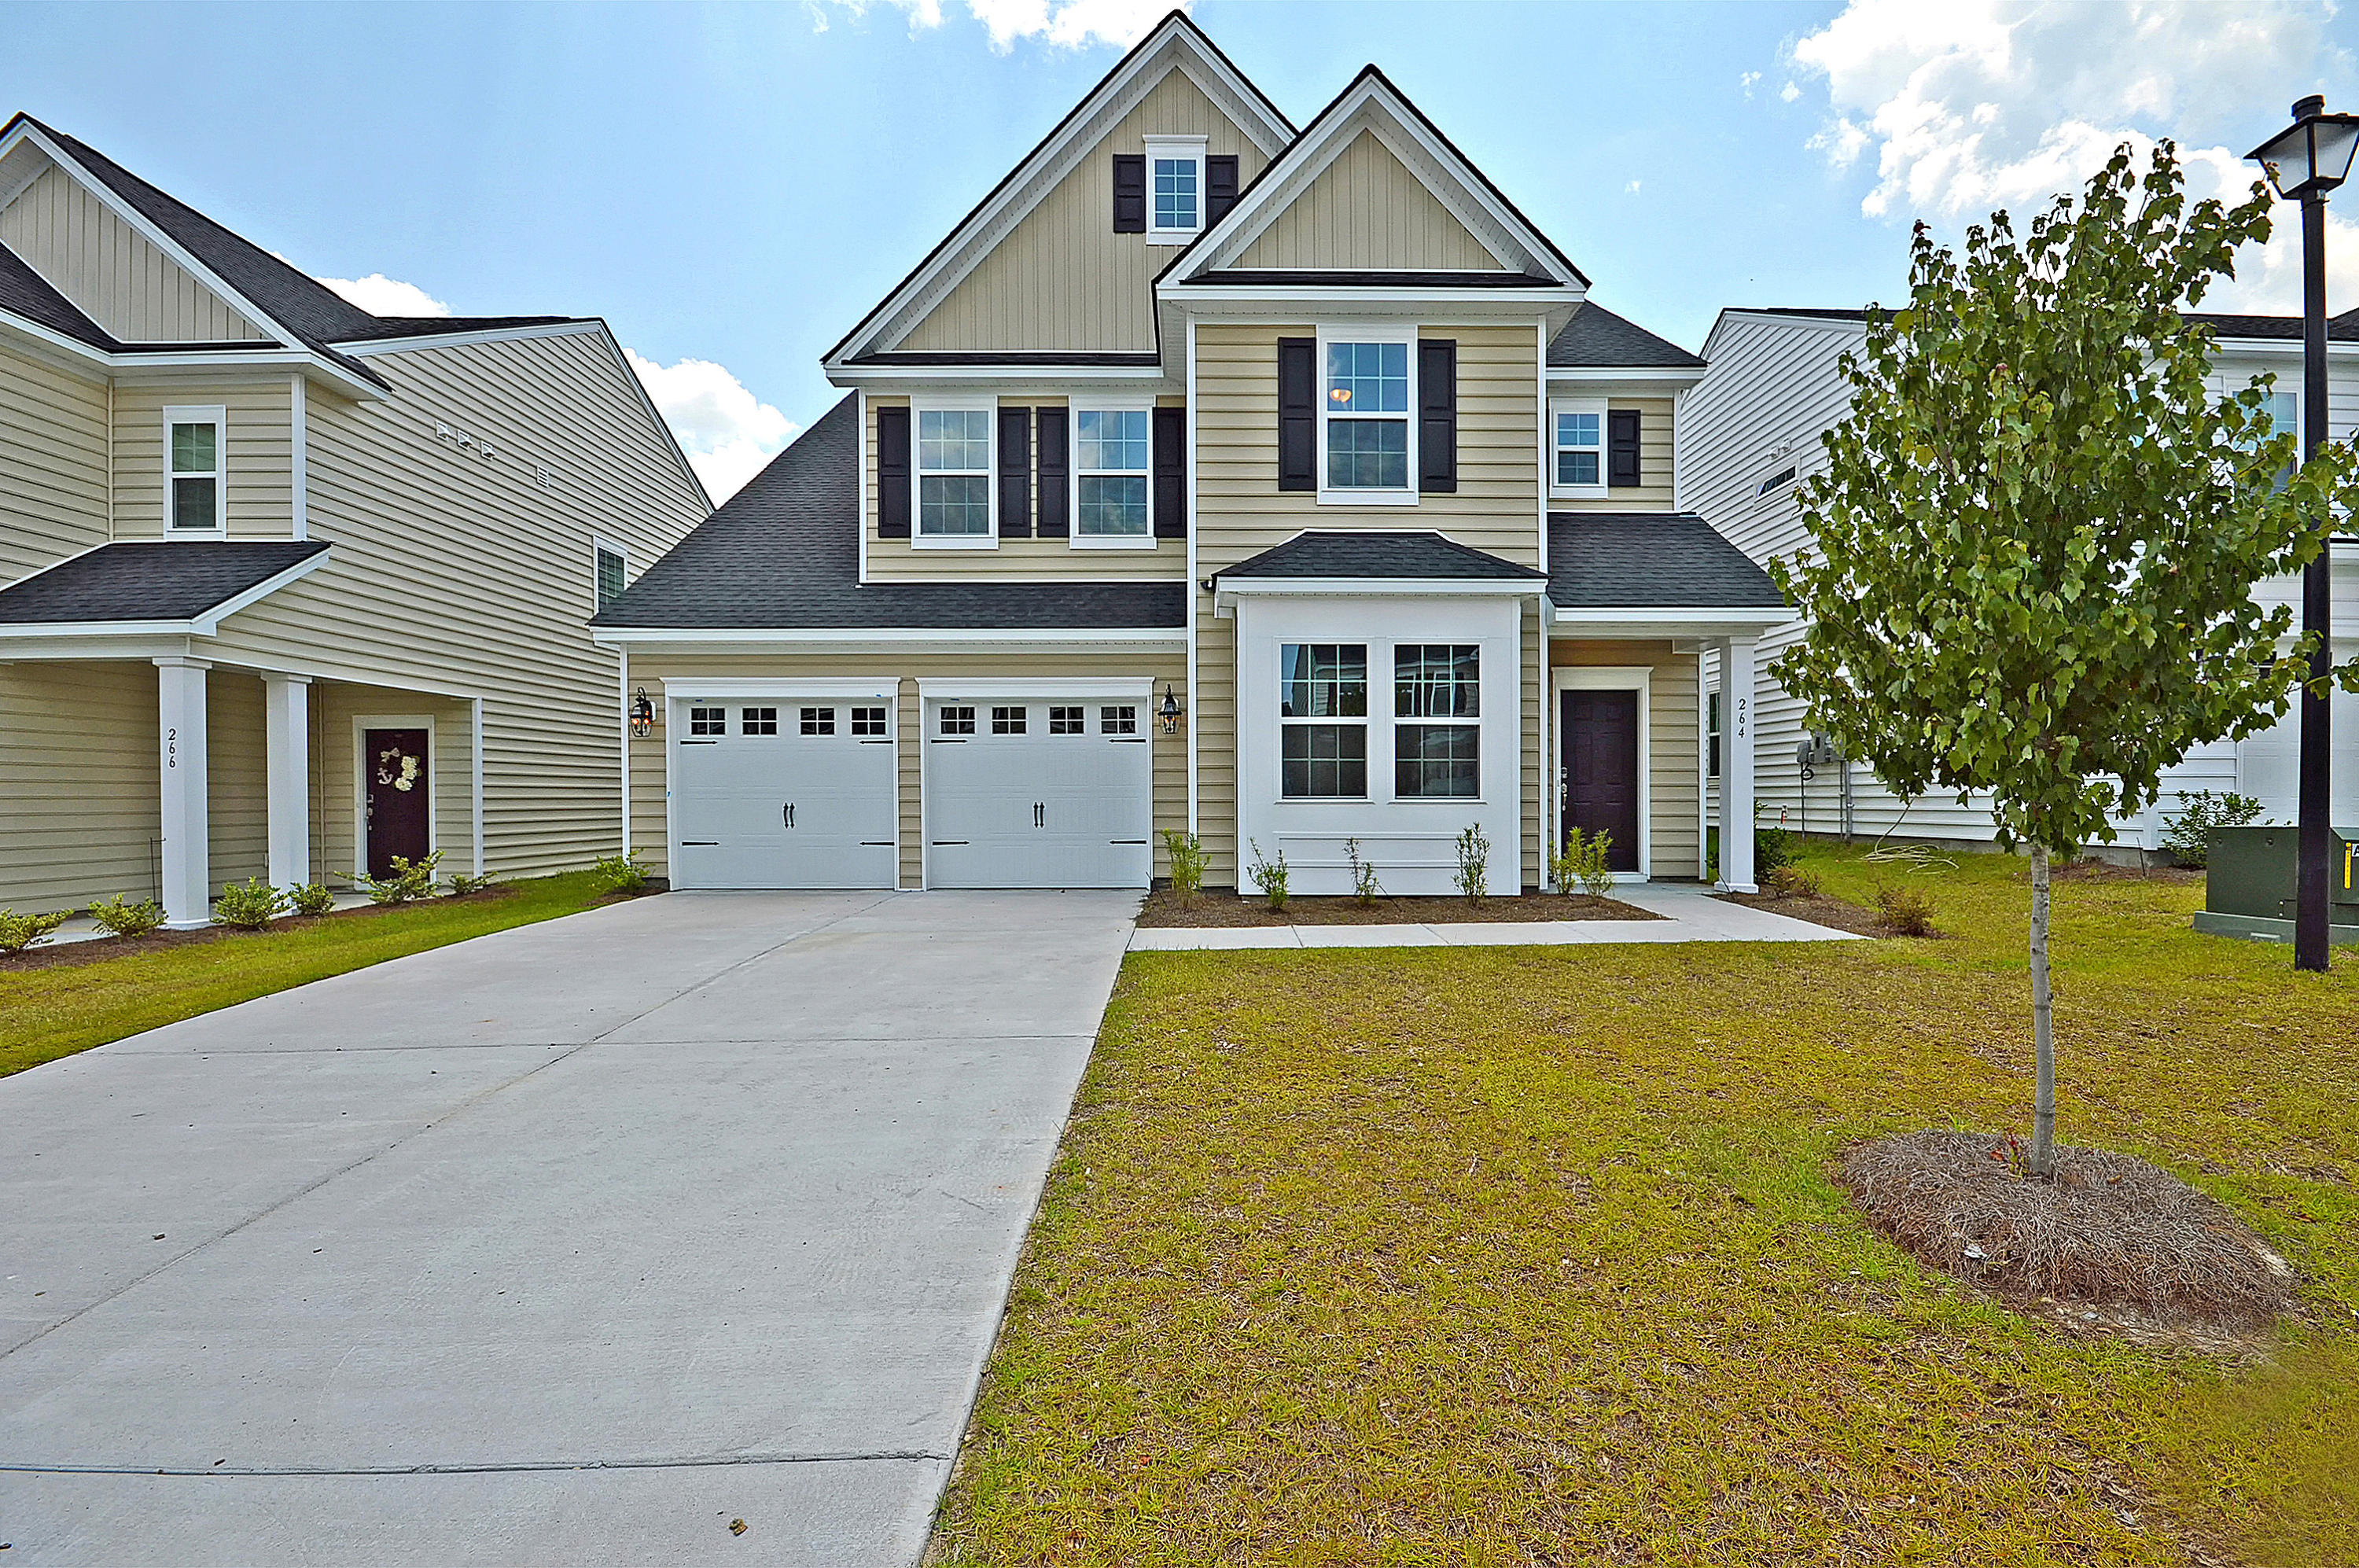 137 Daniels Creek Circle Goose Creek, Sc 29445